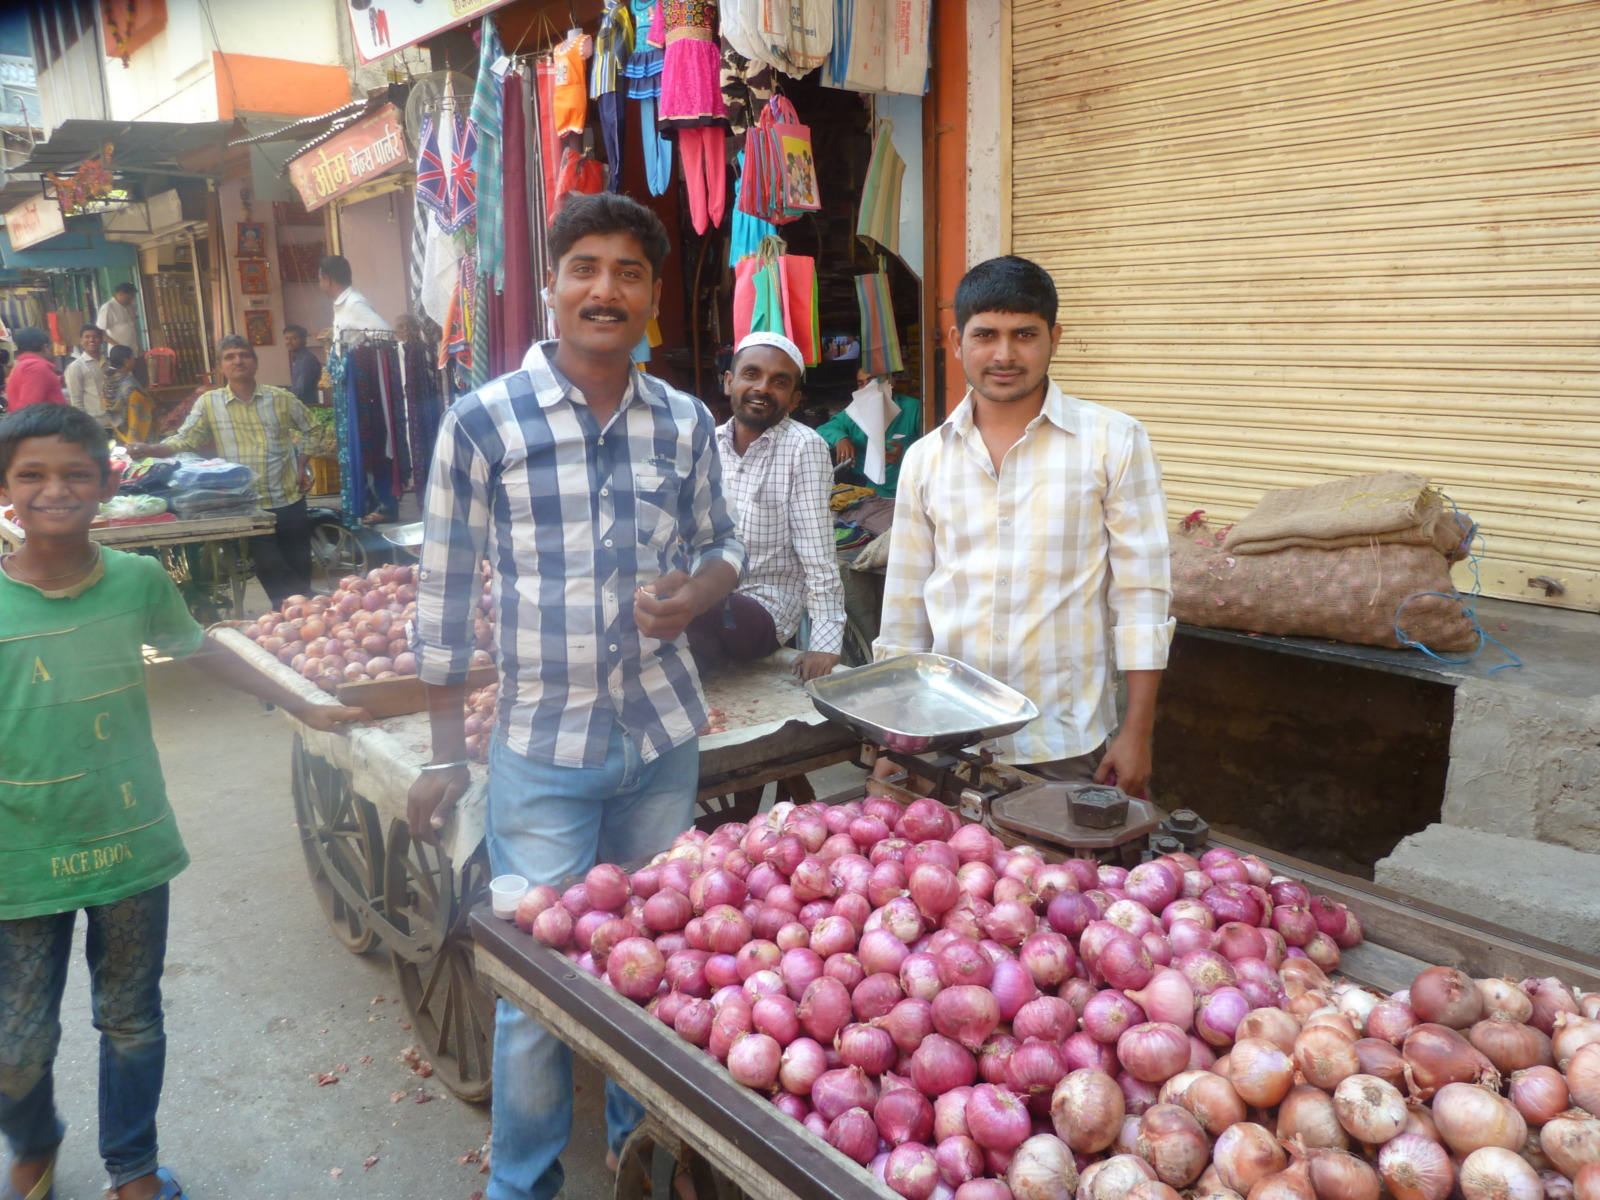 Smiley market traders in India